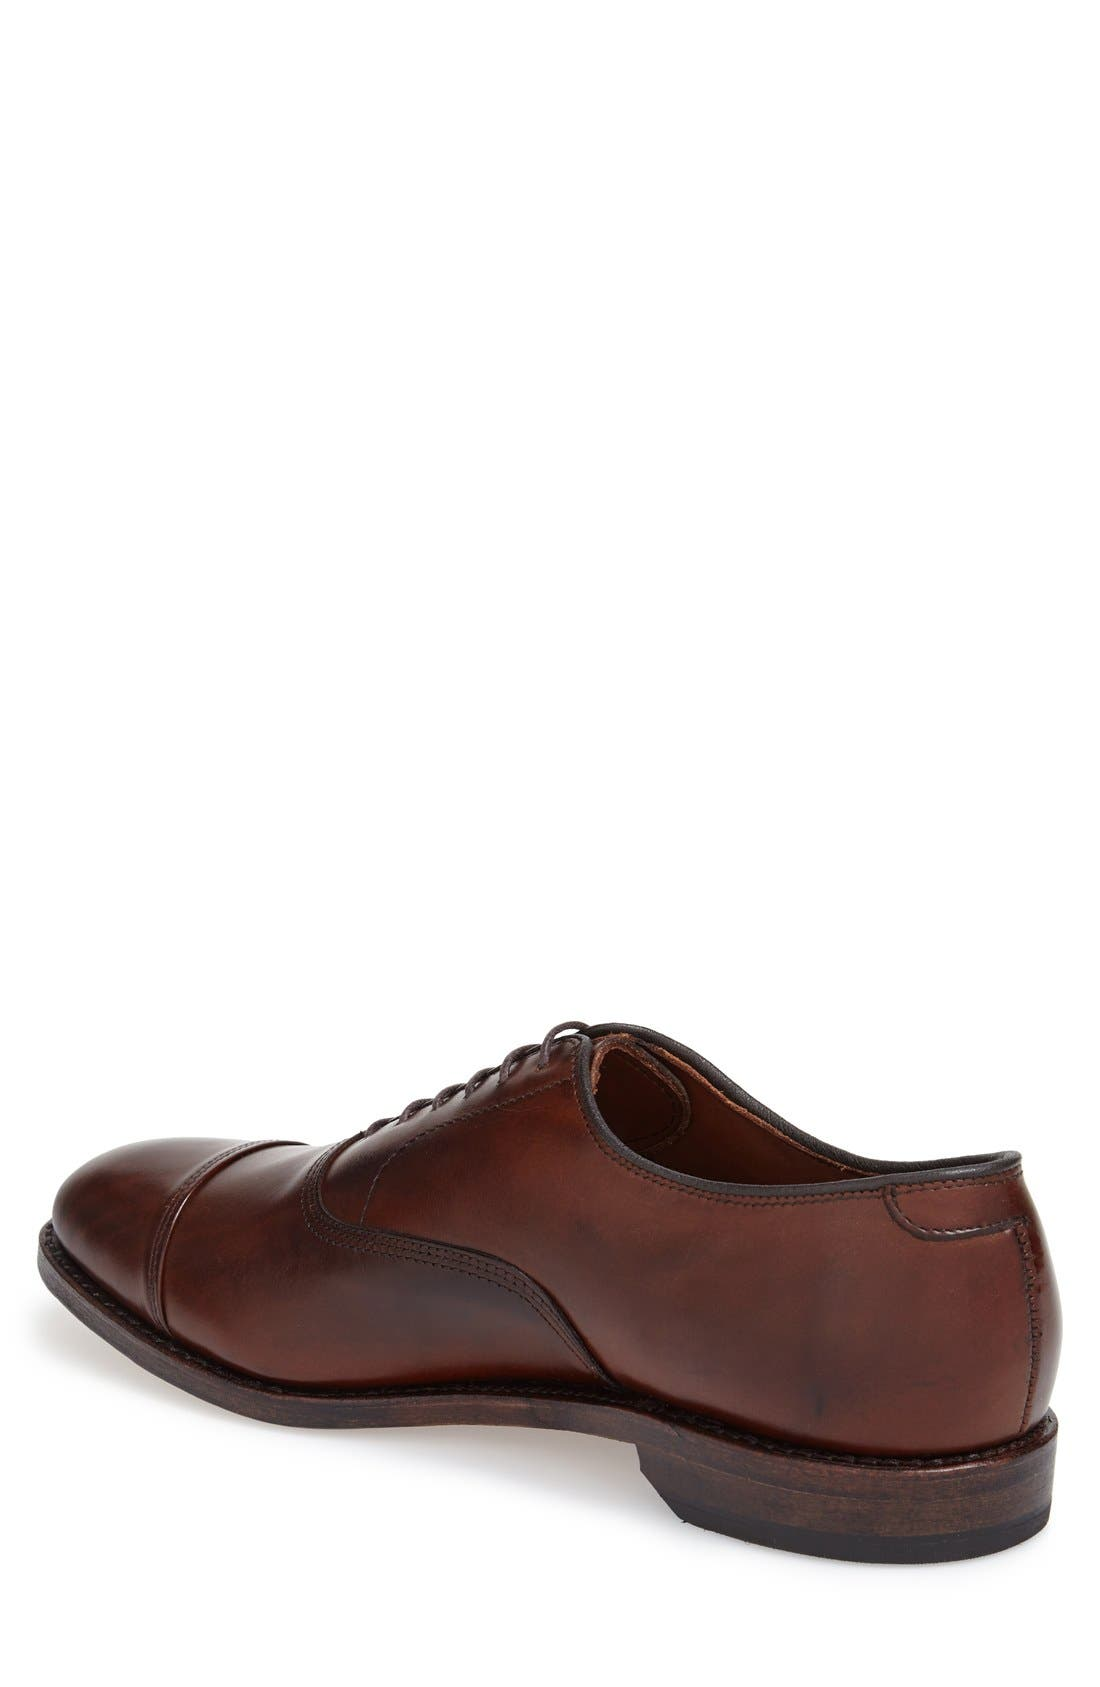 ALLEN EDMONDS, 'Park Avenue' Cap Toe Oxford, Alternate thumbnail 2, color, DARK CHILI BURNISHED